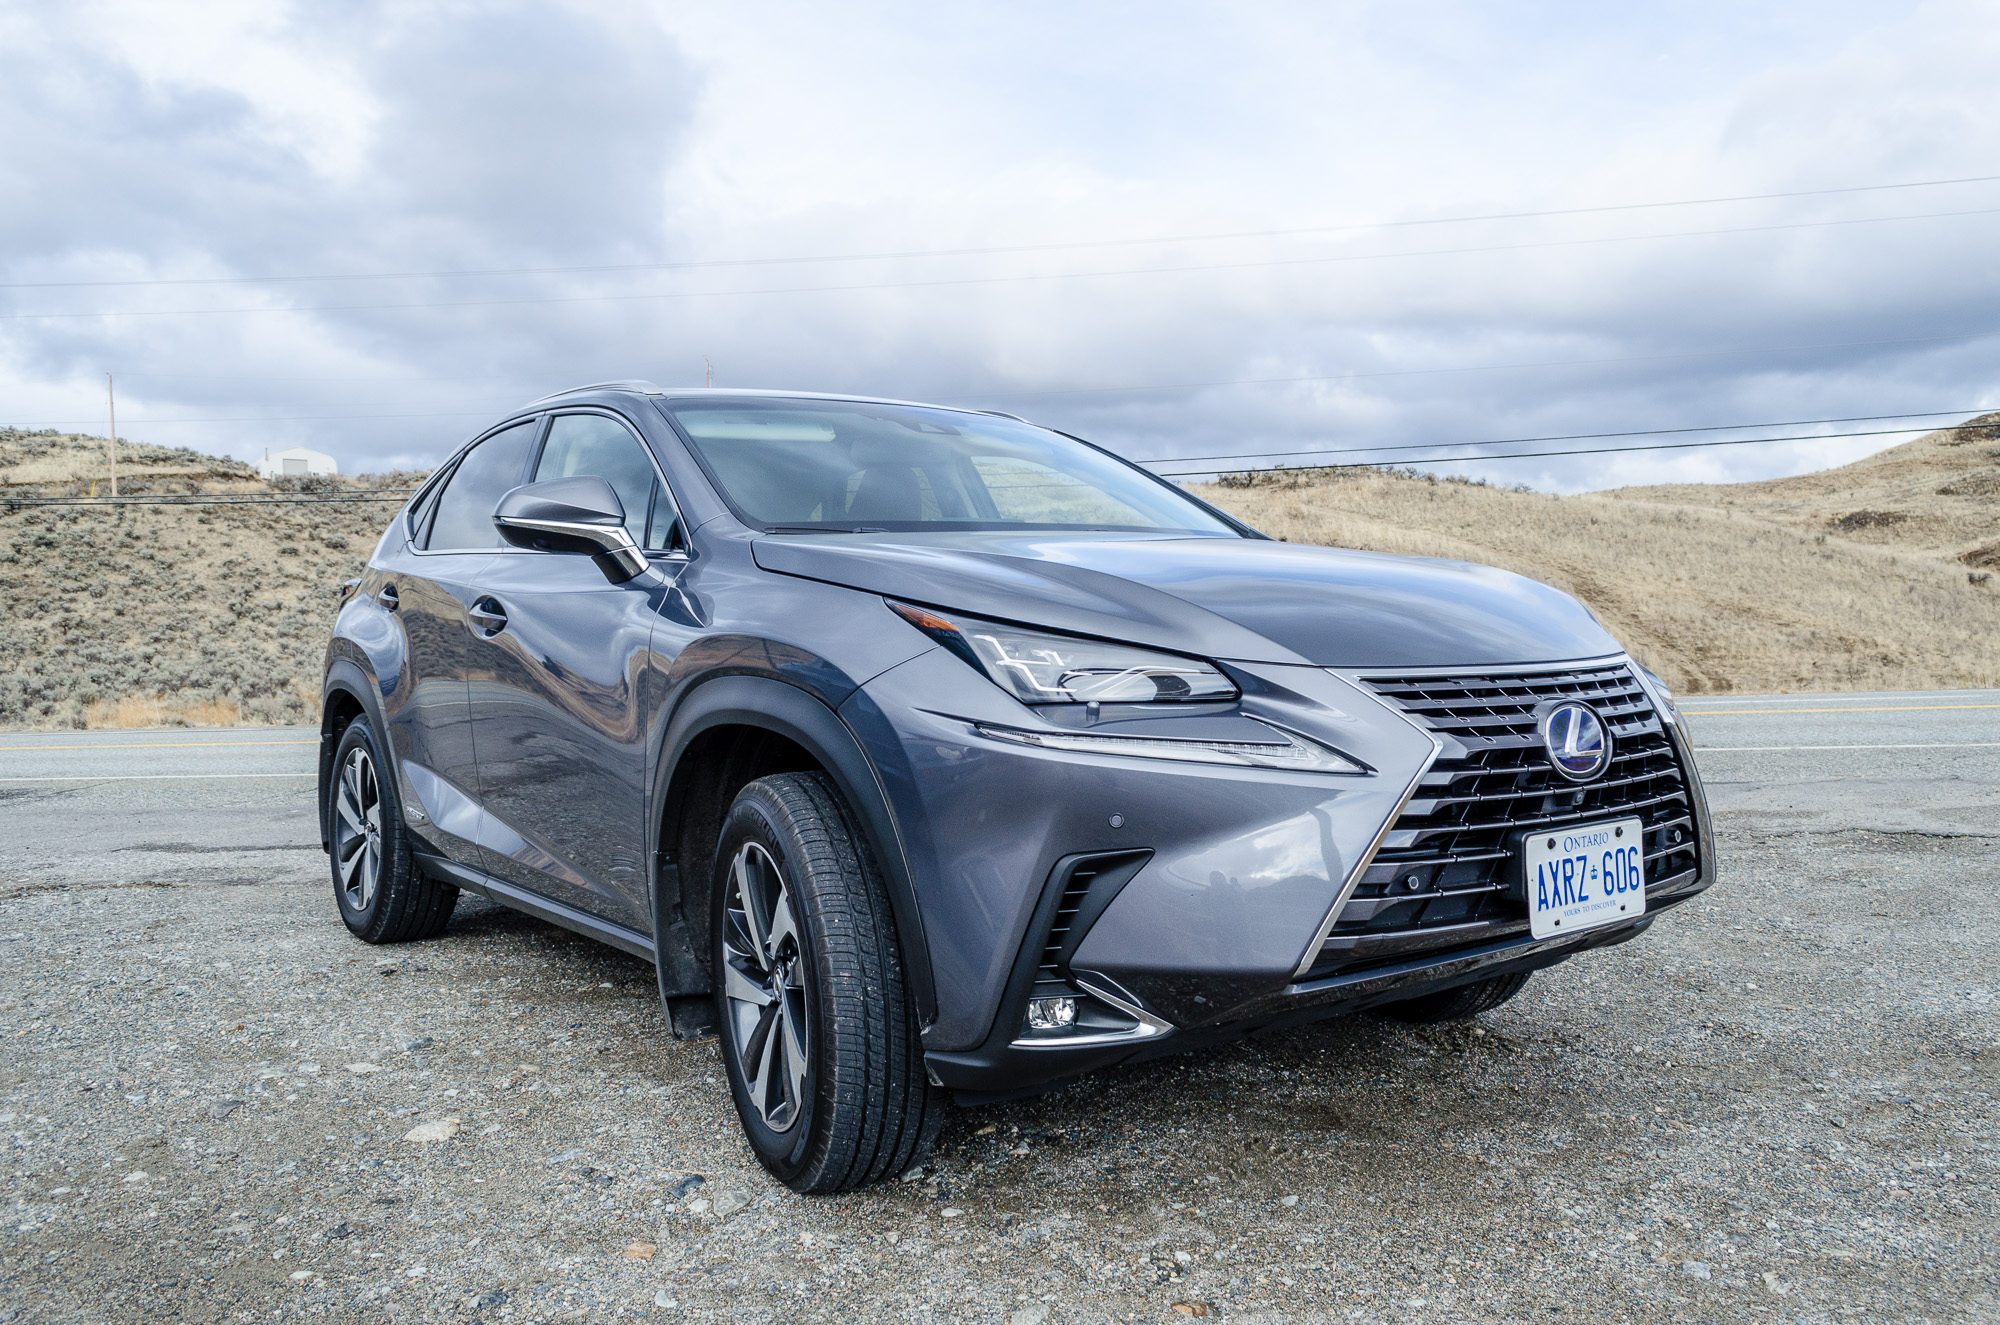 2018 lexus nx 300 hybrid and f sport adventure in the okanagan valley hello vancity. Black Bedroom Furniture Sets. Home Design Ideas